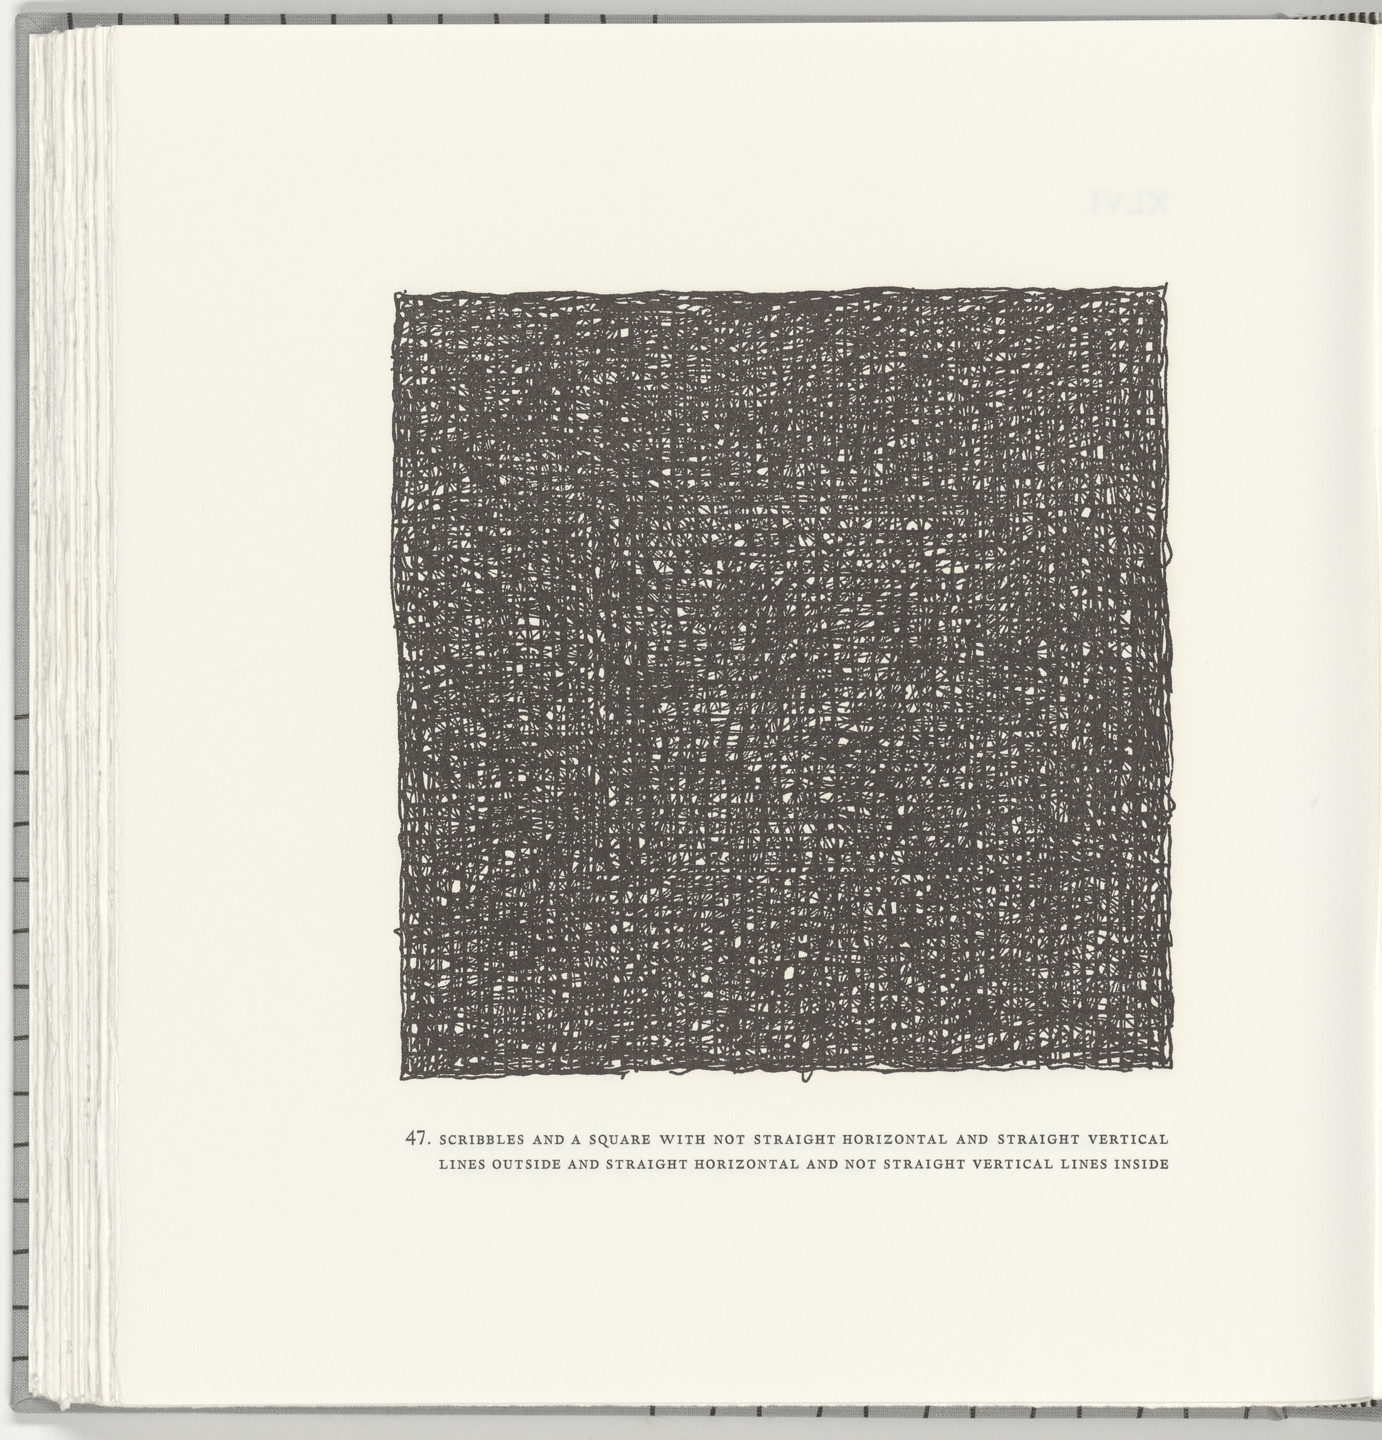 Sol LeWitt. Scribbles and a Square with Not Straight Horizontal and Straight Vertical Lines Outside and Straight Horizontal and Not Straight Vertical Lines Inside (plate 47) from Squarings. 2003